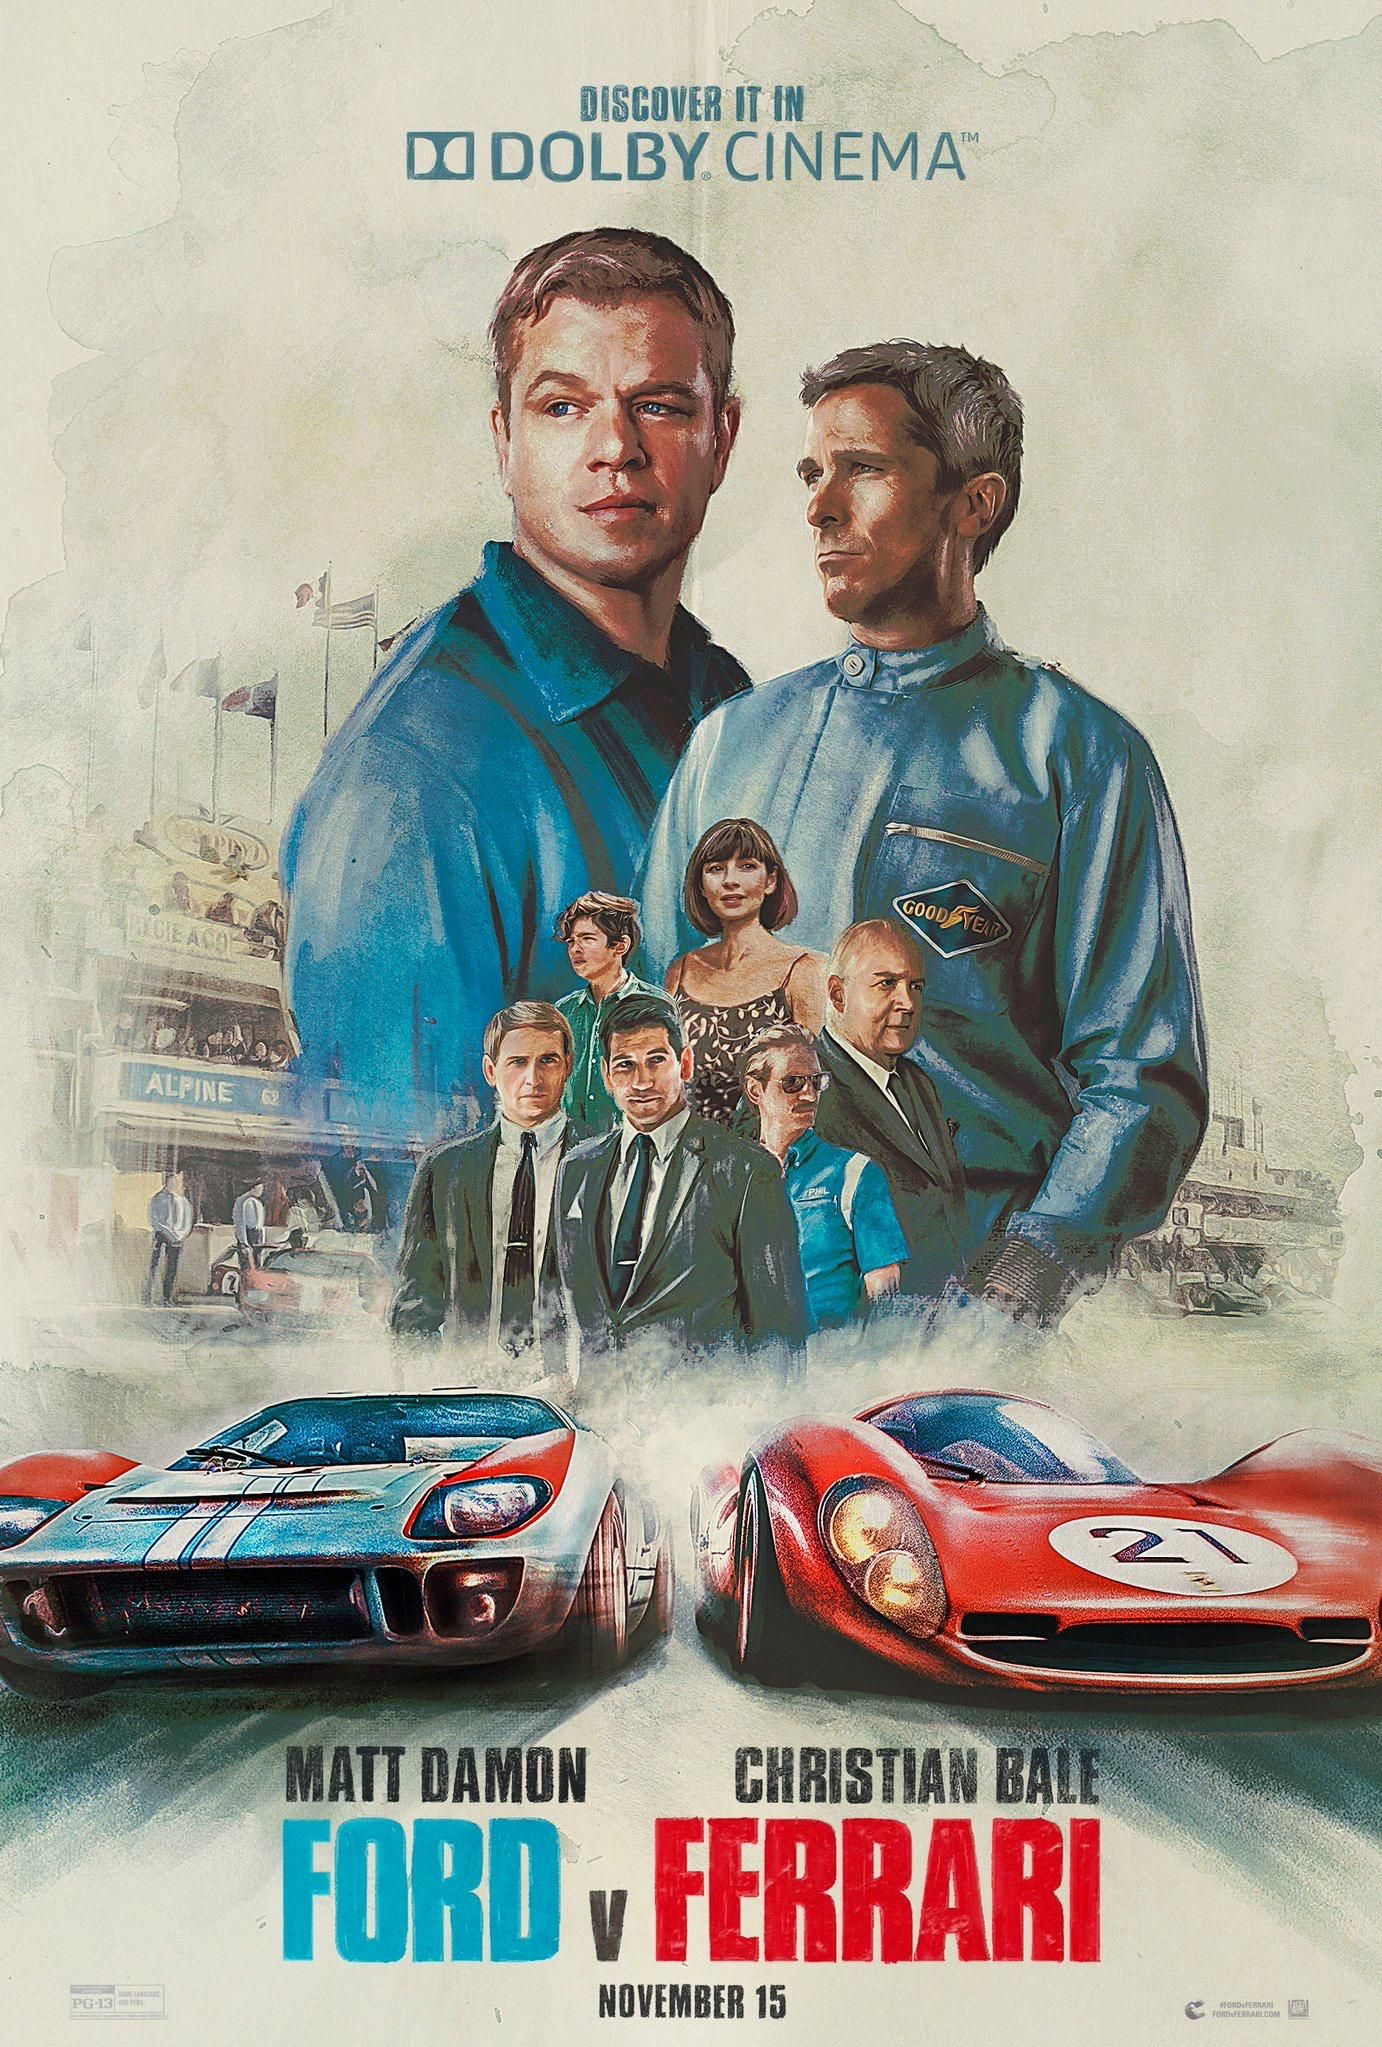 Ford V Ferrari Dolby Cinema Poster Https Ift Tt 2rb6pq1